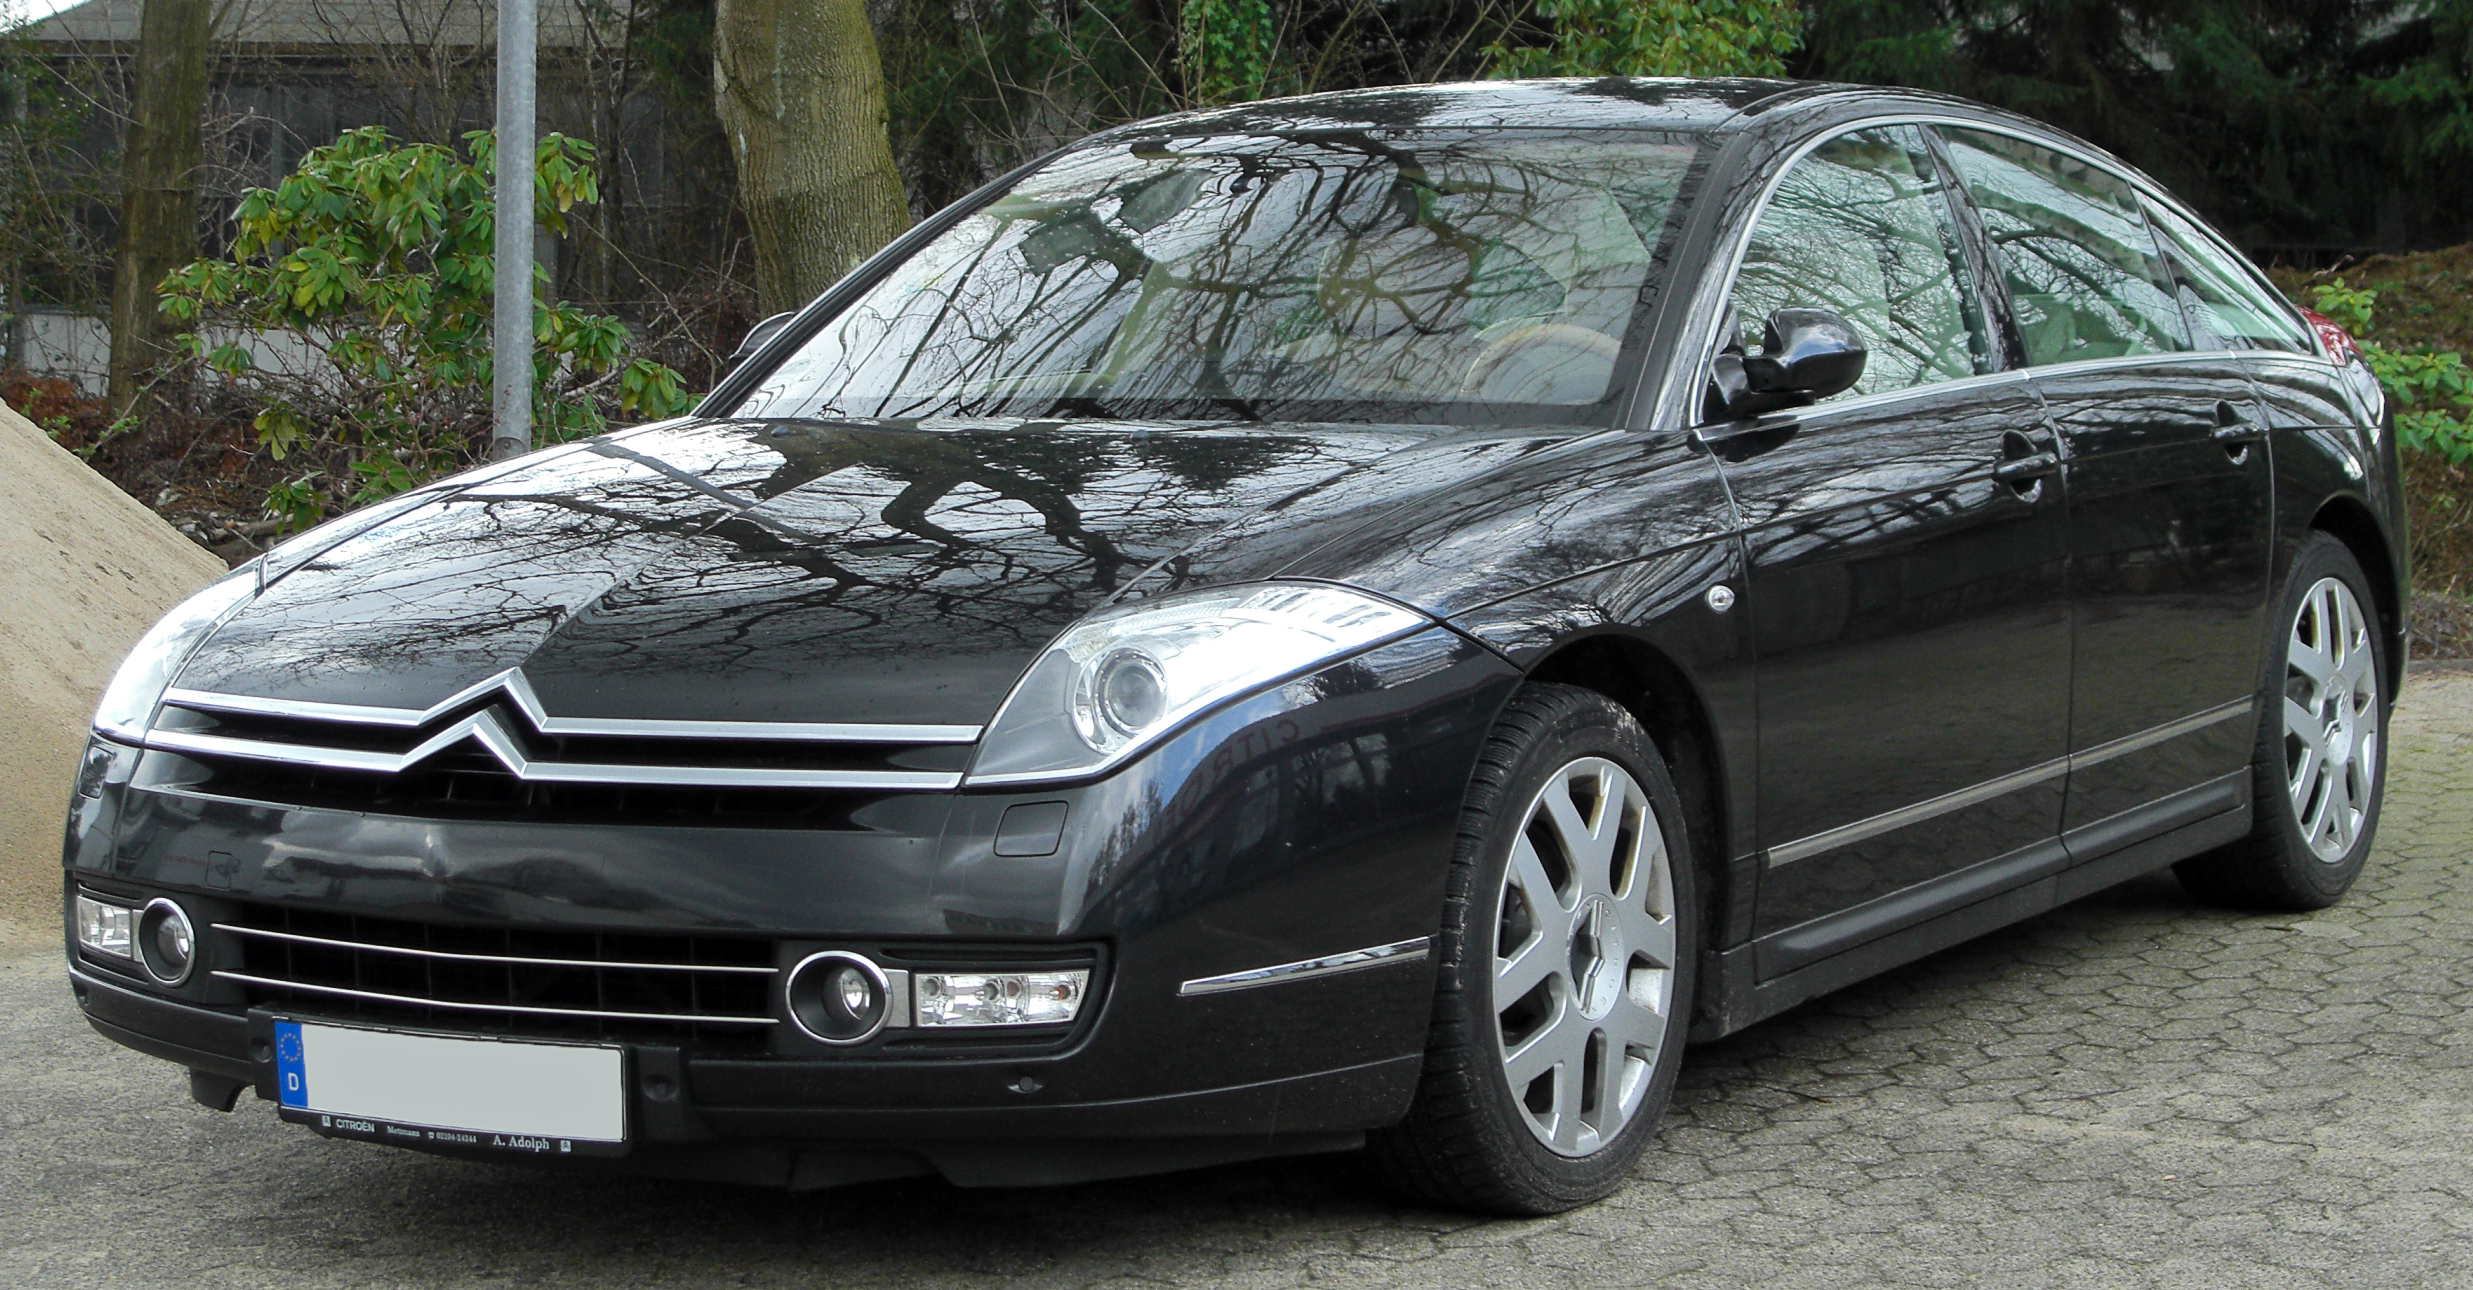 citroen c6 wallpaper #14